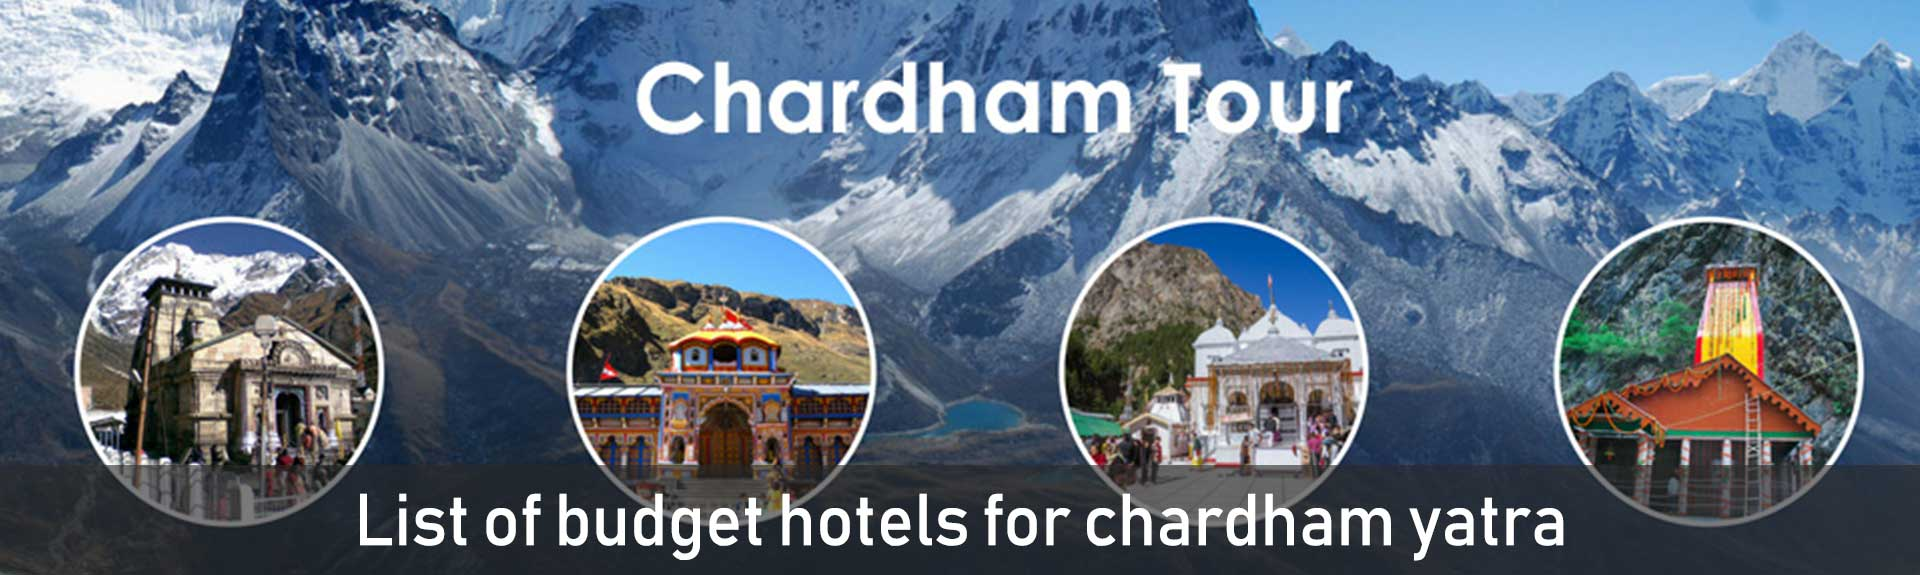 List of budget hotels for chardham yatra